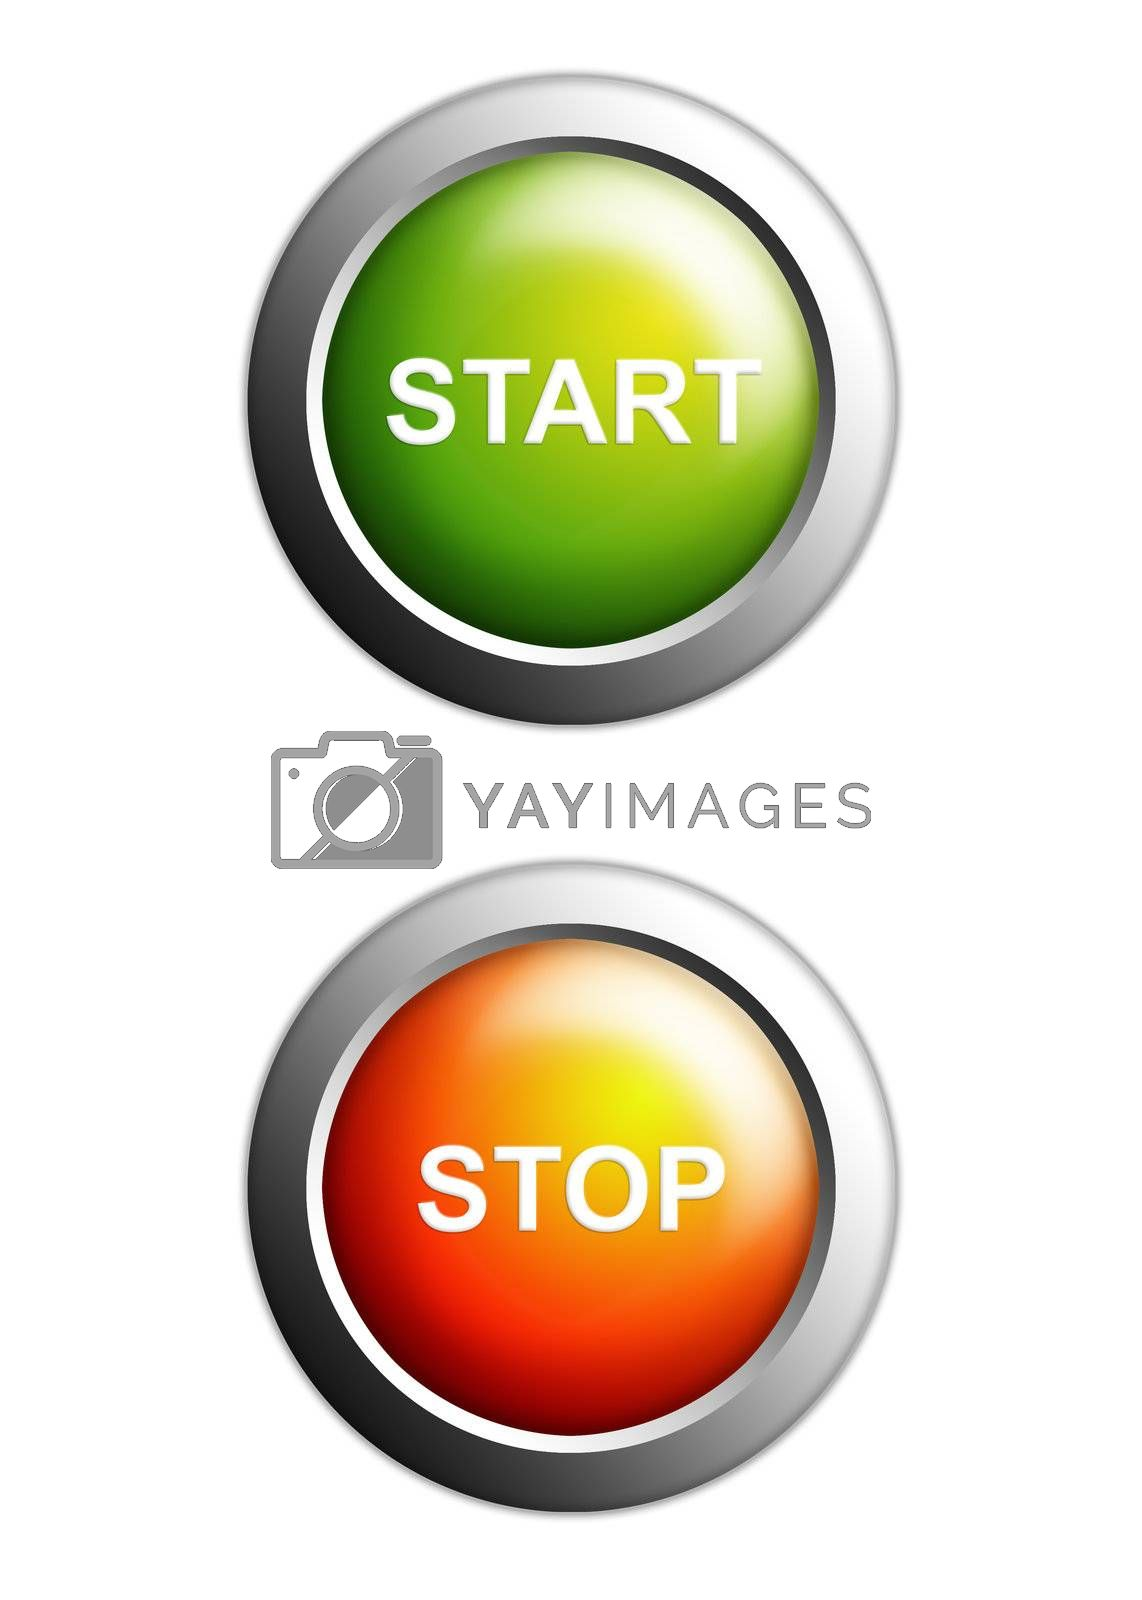 start and stop buttons isolated on white background